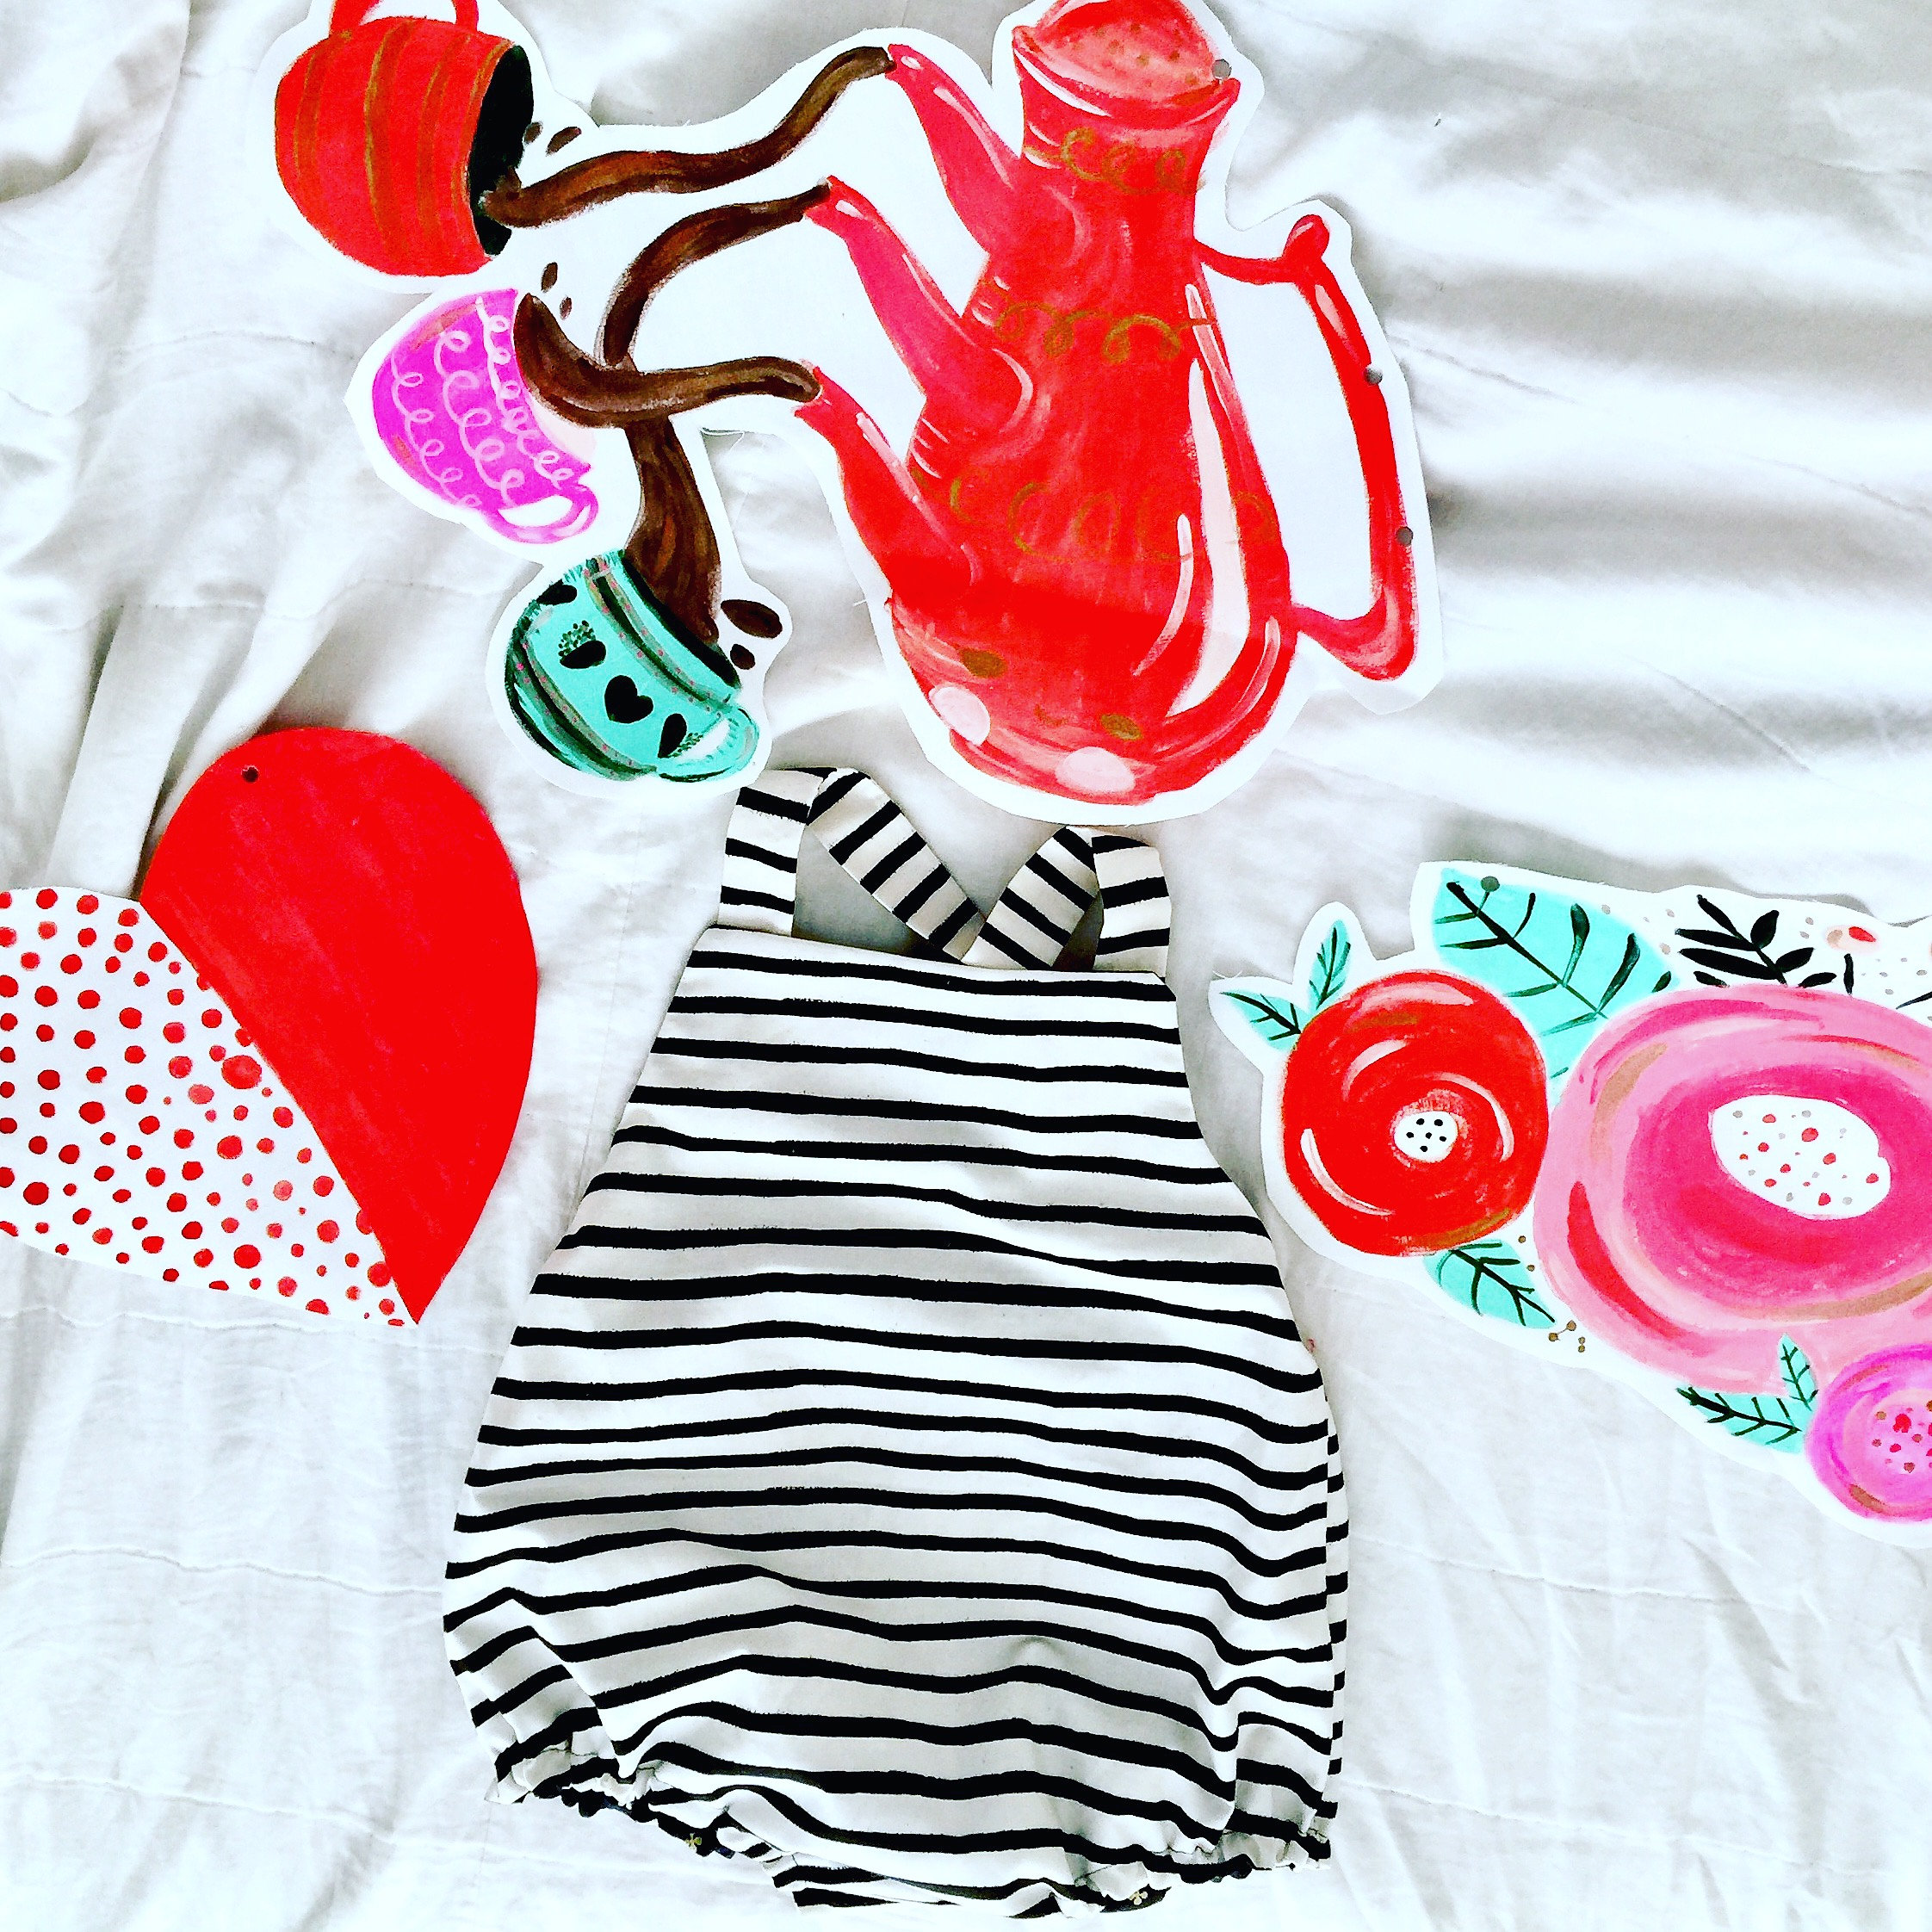 Baby clothes accessories & nursery fabrics by Sew Knit And Crafty